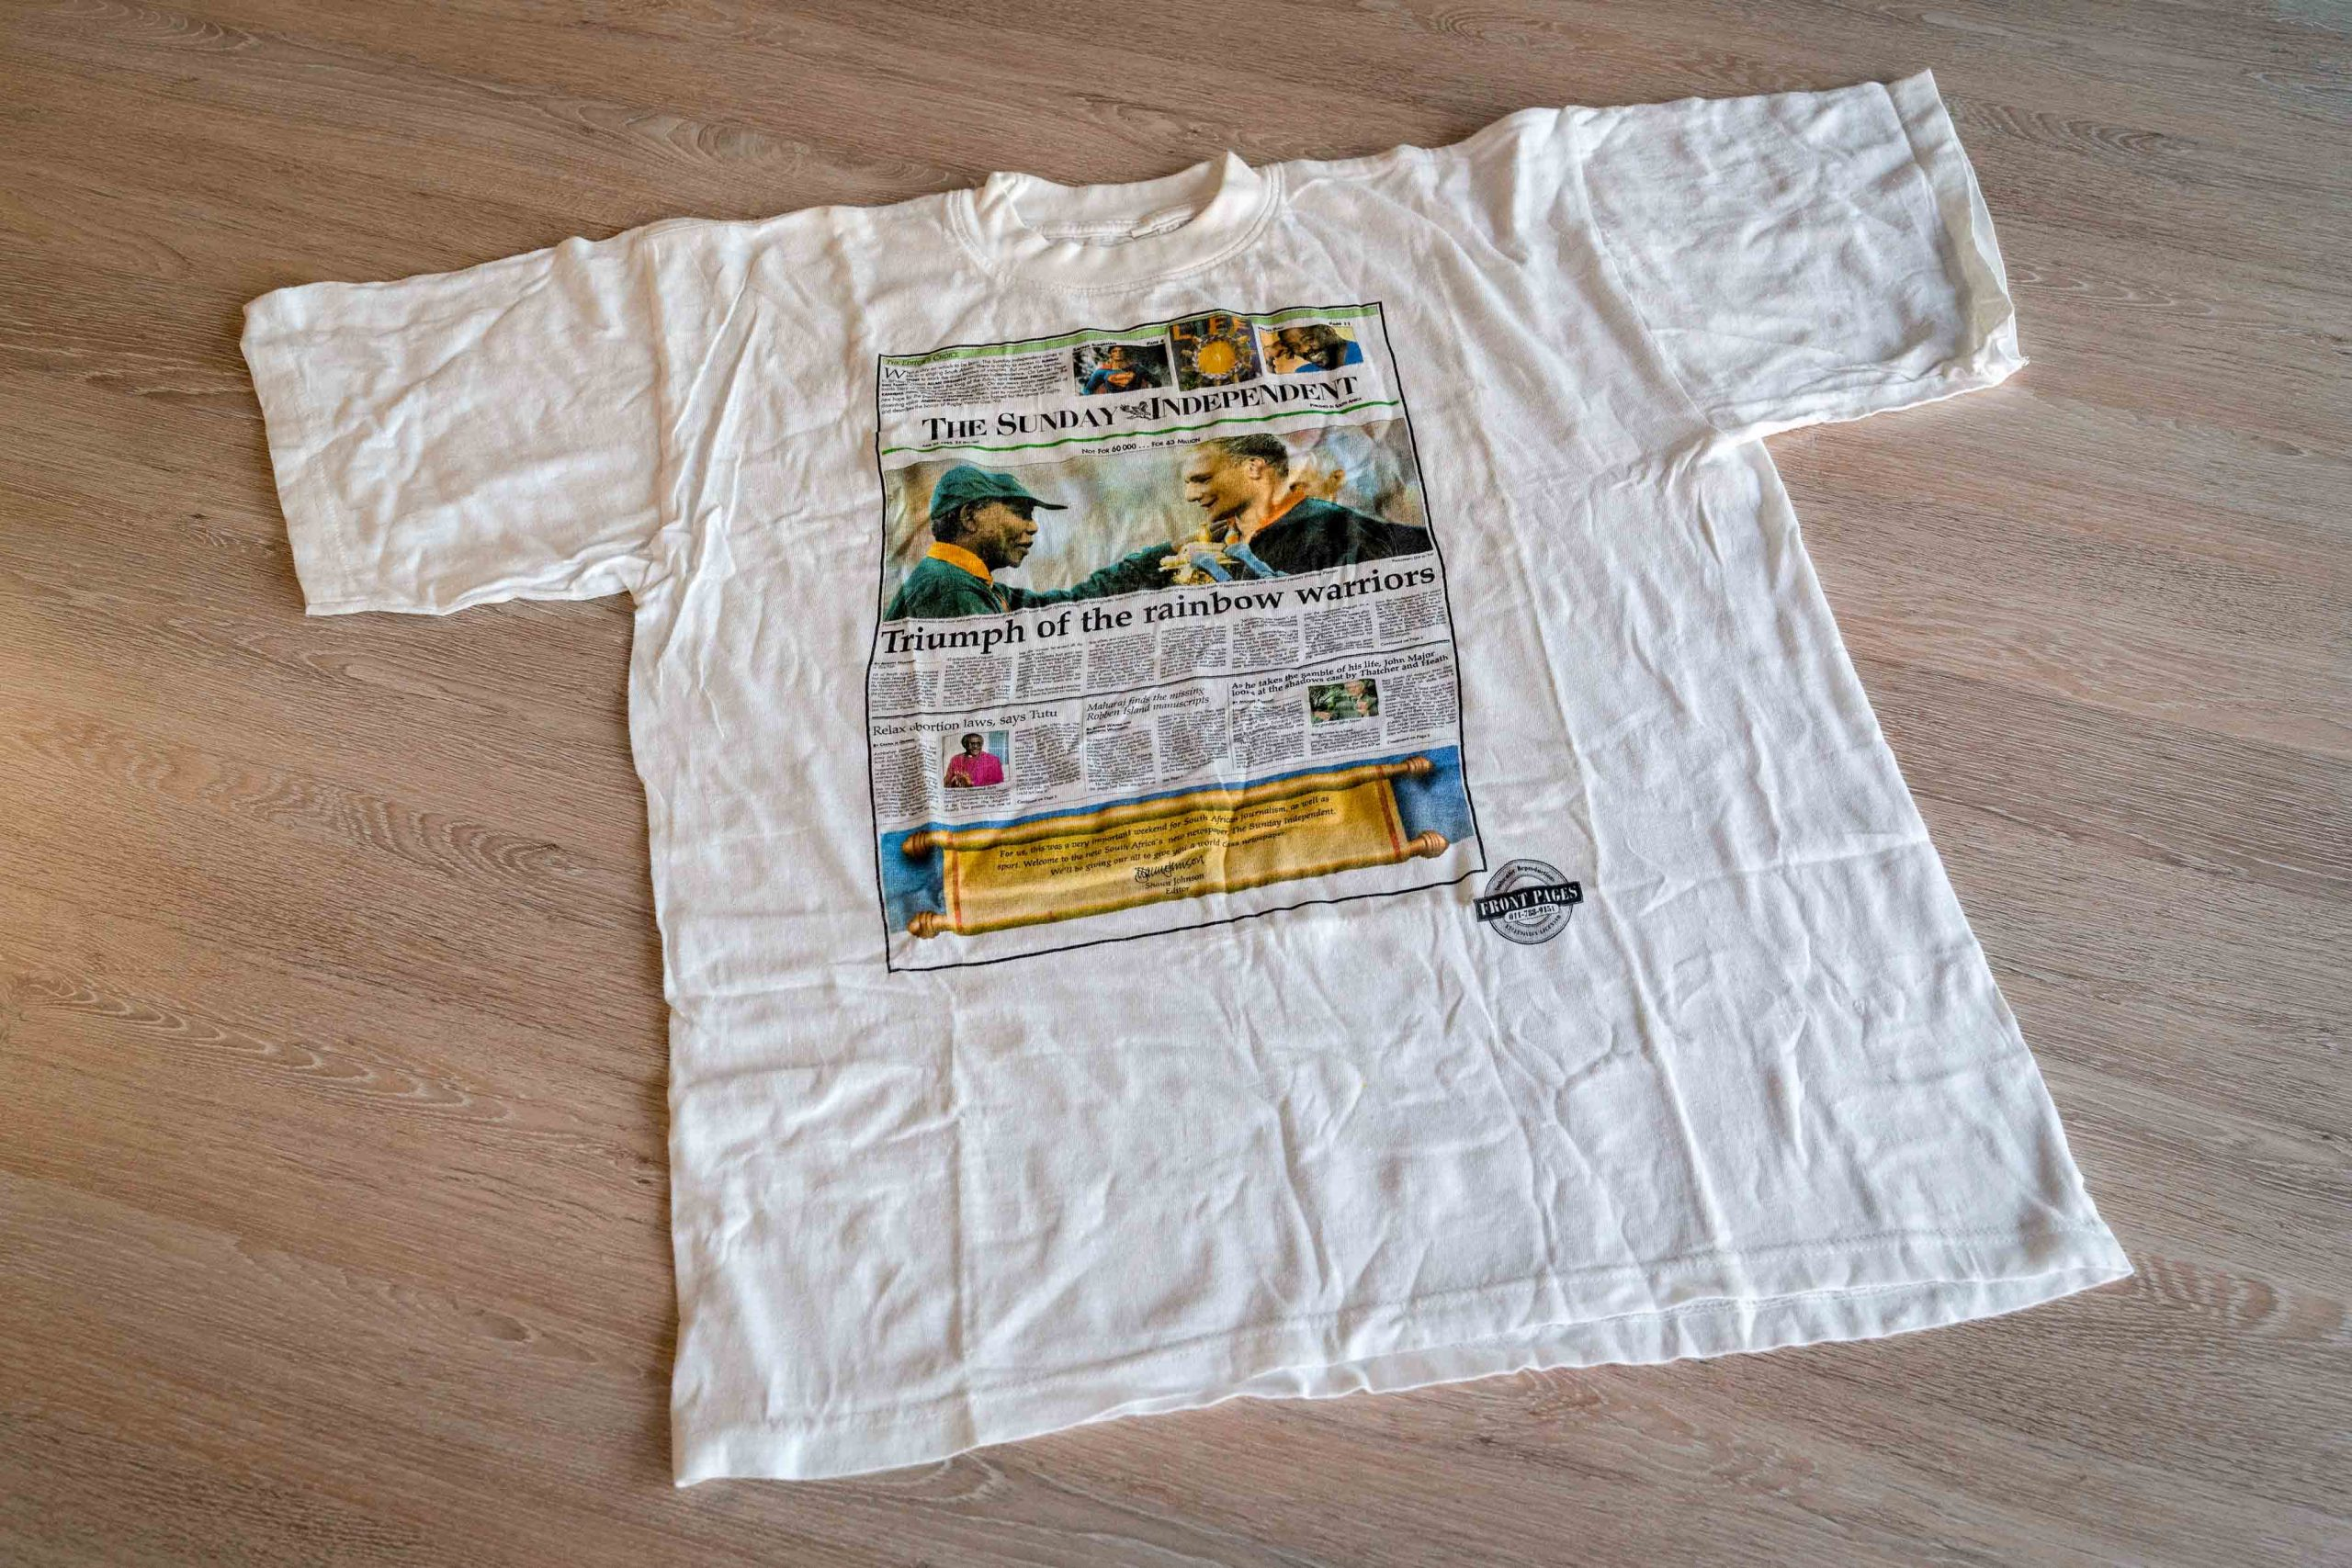 26 February 2020: The T-shirt commemorating the launch of The Sunday Independent in June 1995